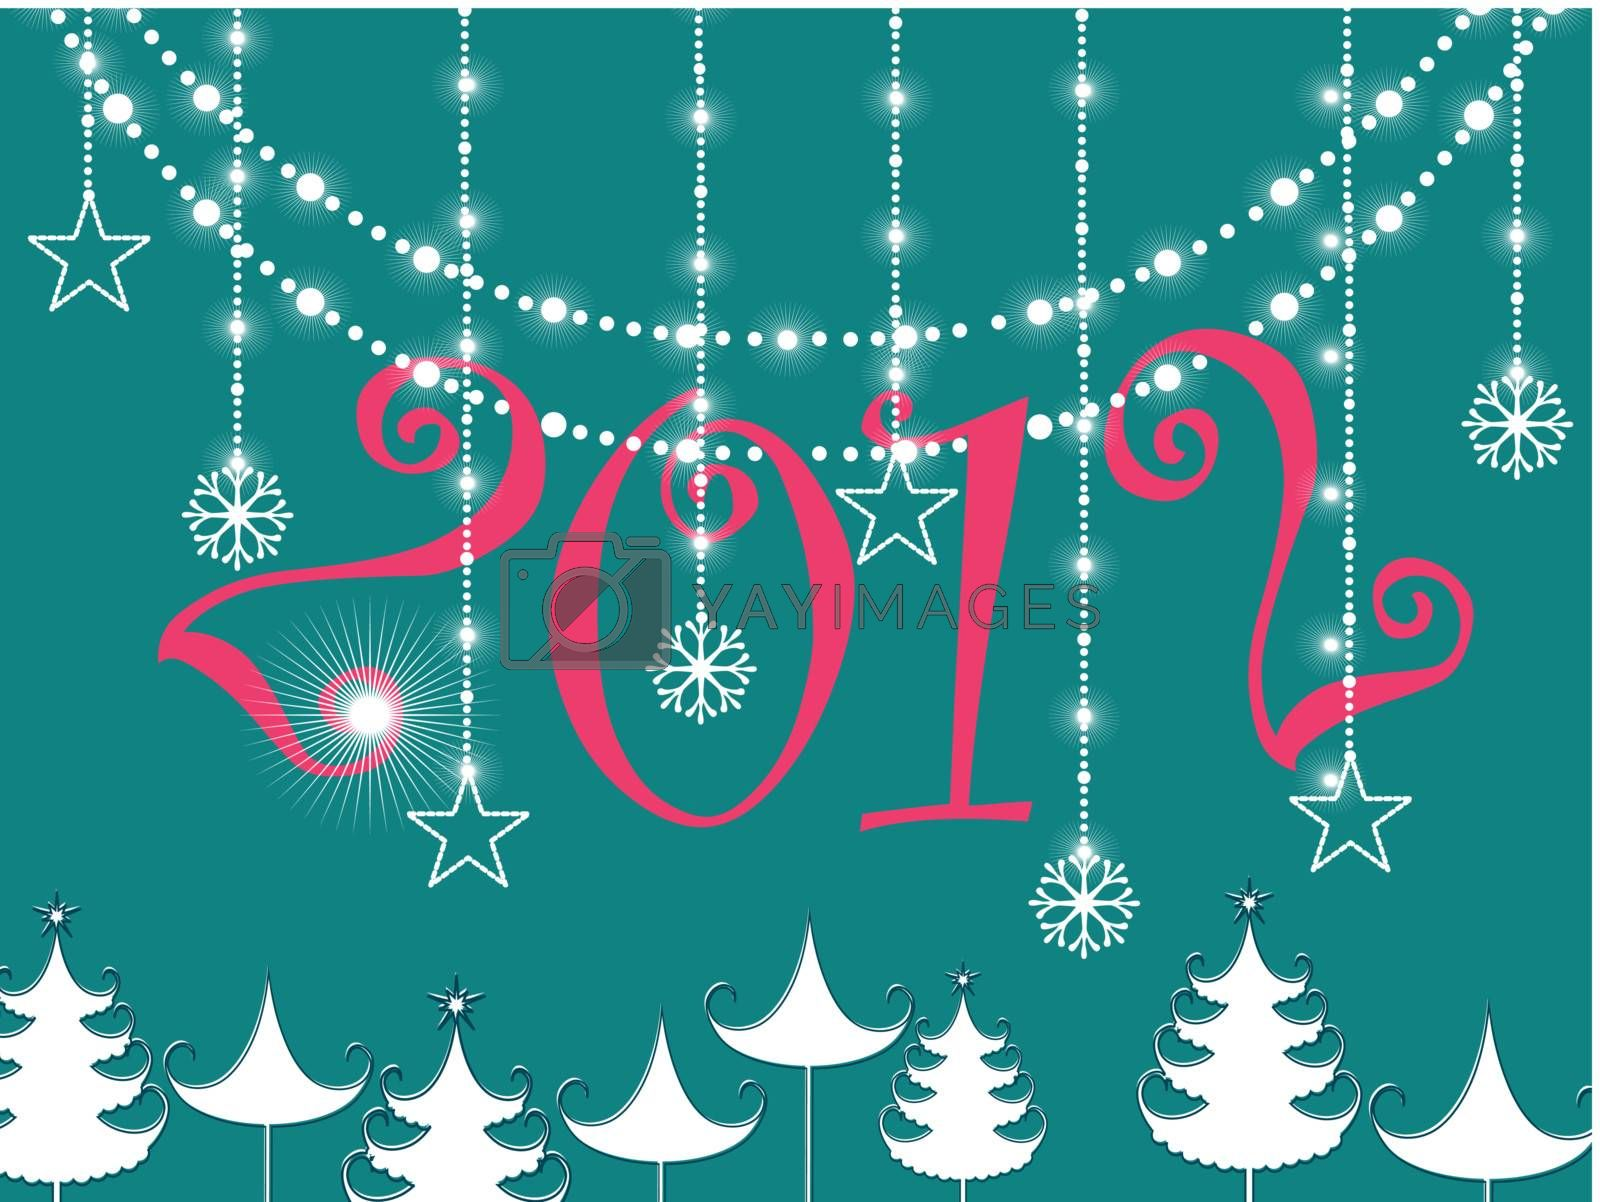 hanging flower & twinkle stars, cristmas tree  on green background with pink 2012 text